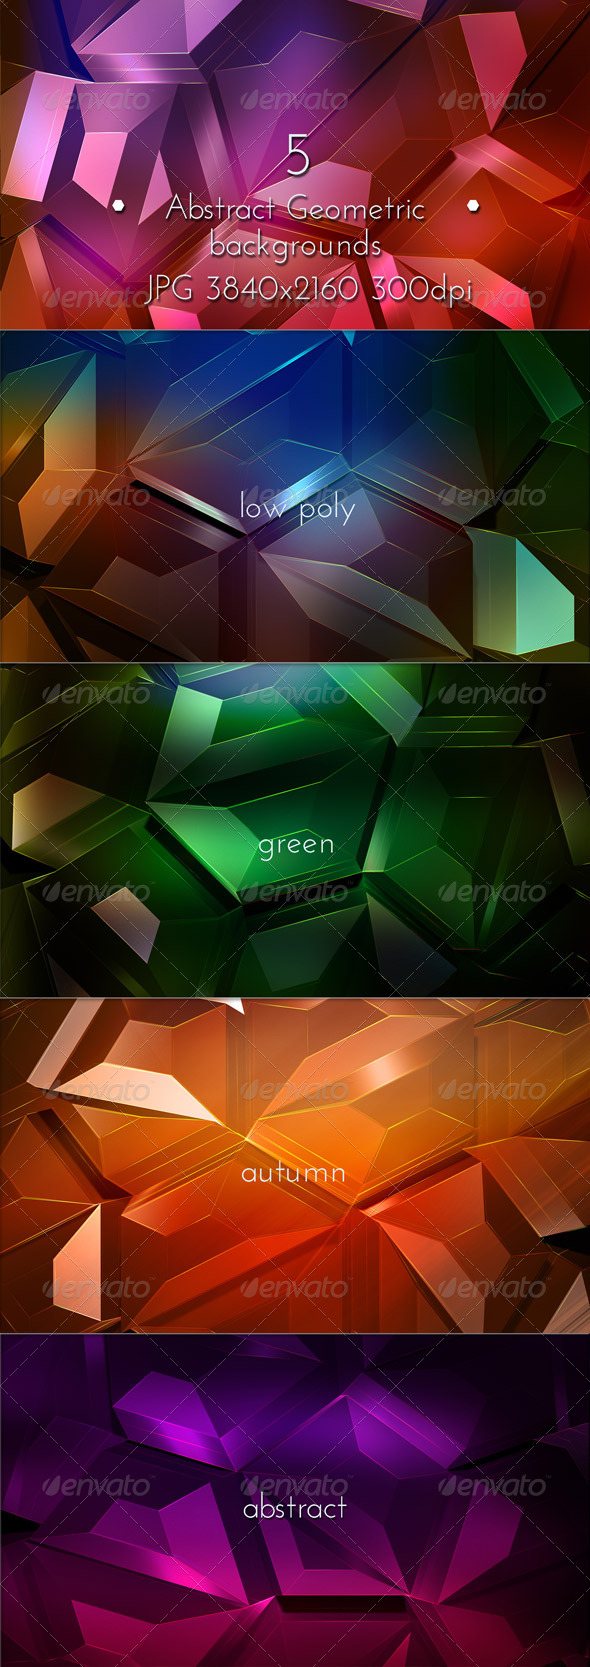 Geometric Abstract Low Poly